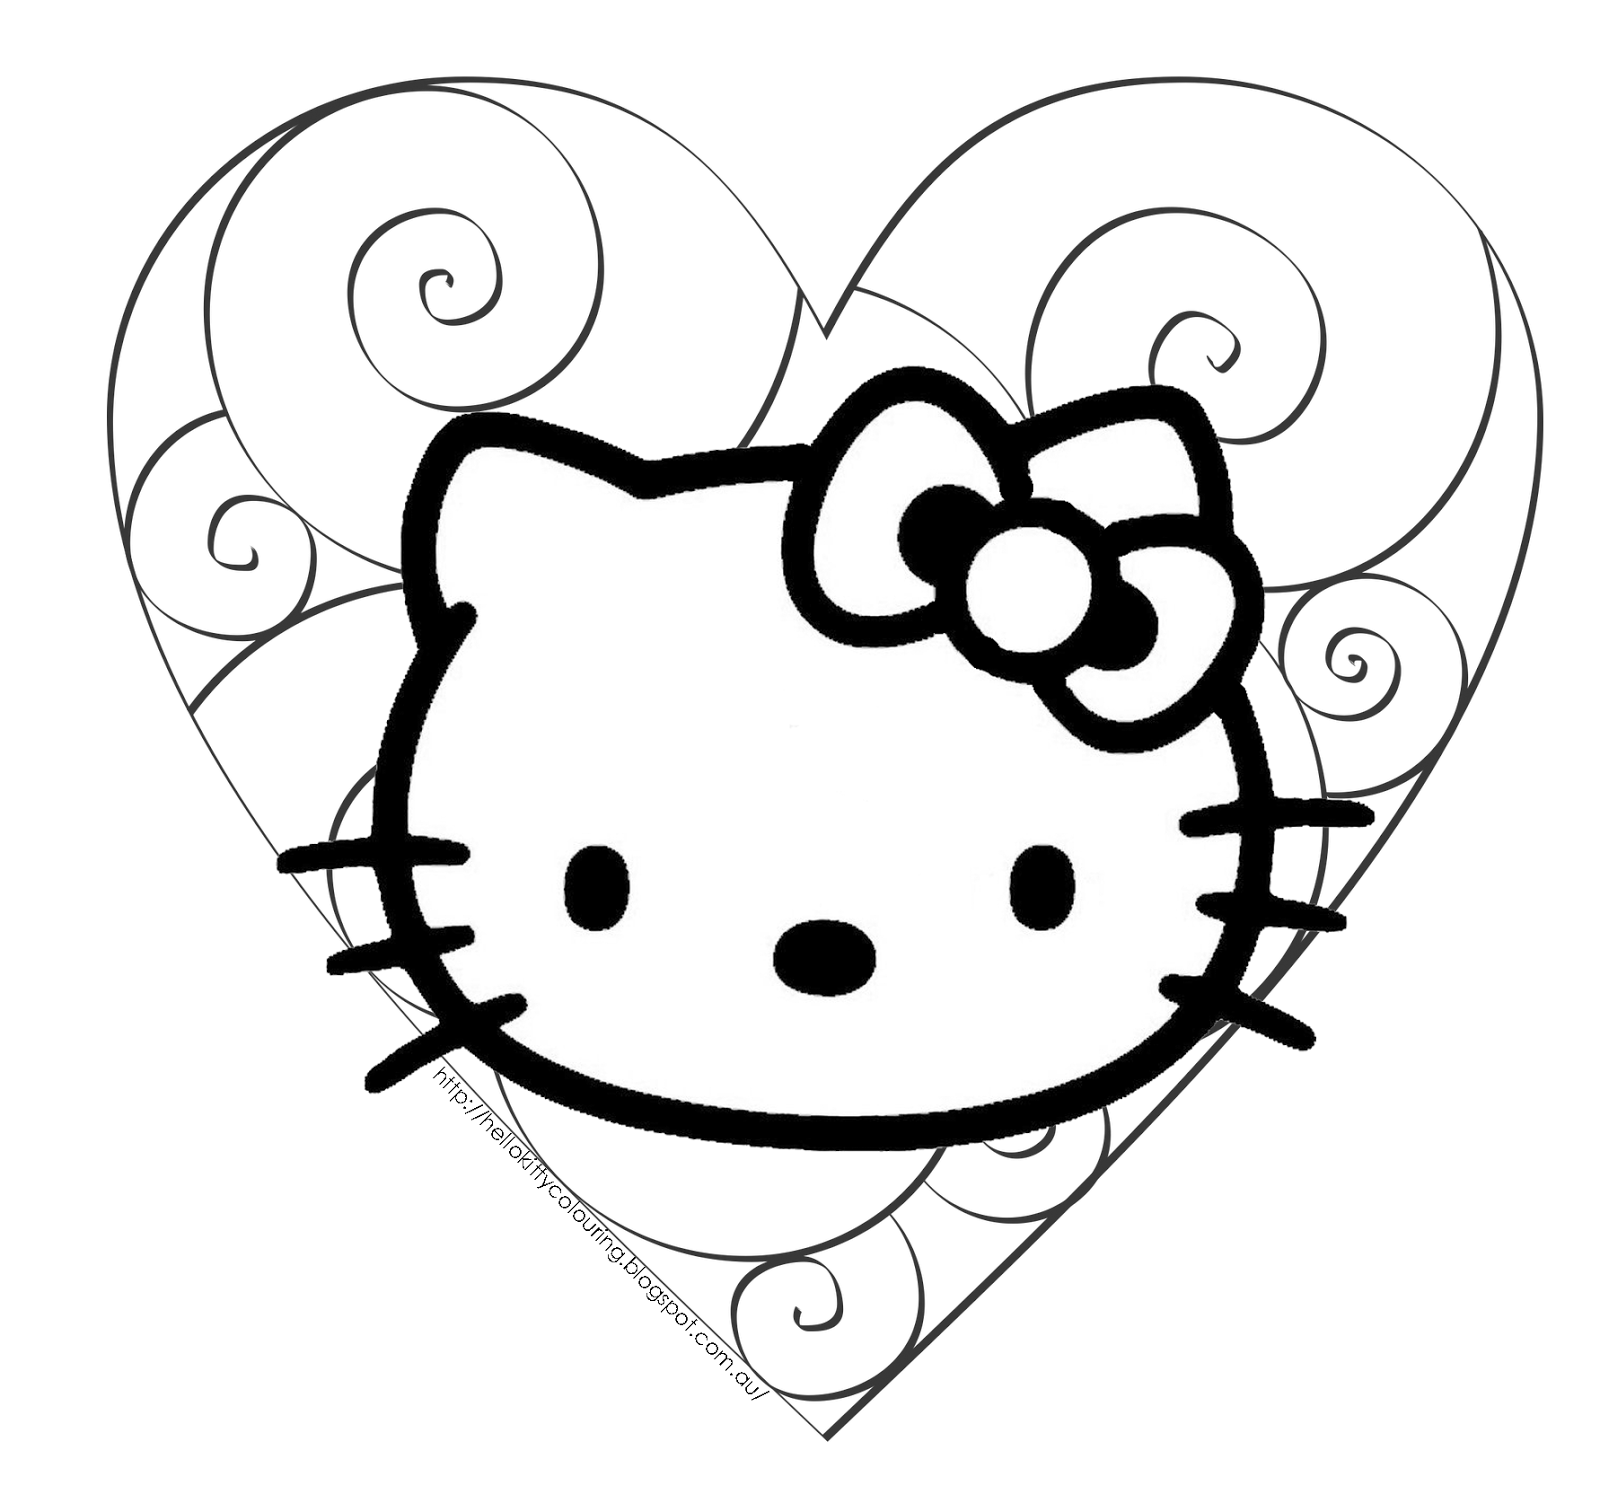 hello kitty coloring pages free free printable hello kitty coloring pages for pages hello coloring kitty pages free